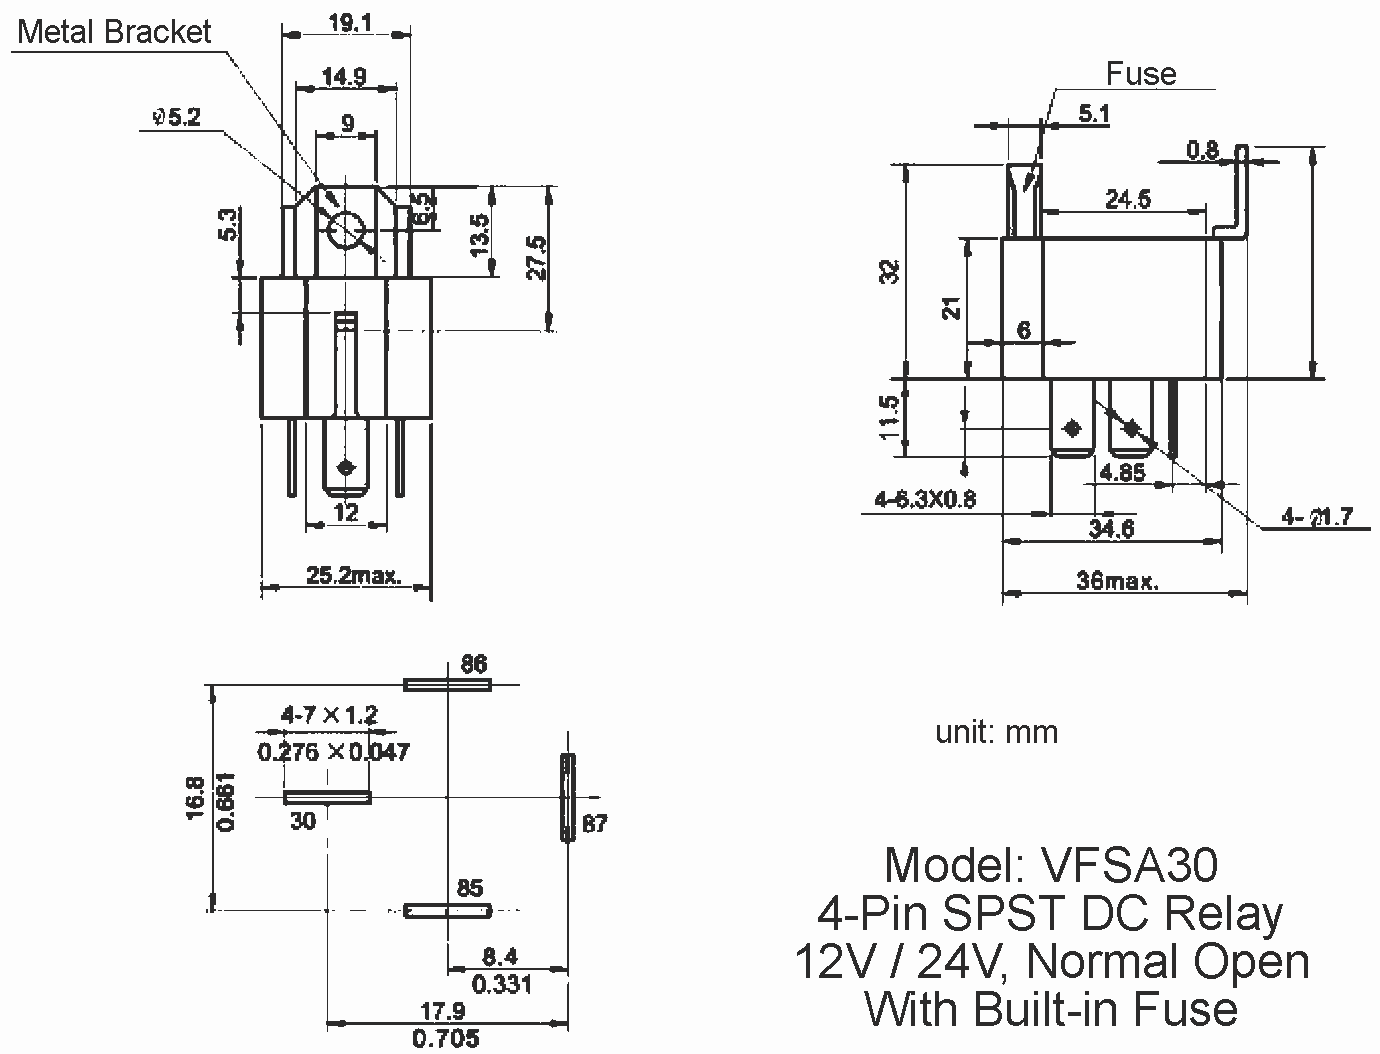 12v    24v automotive dc relay with 30a fuse  model vfsa30